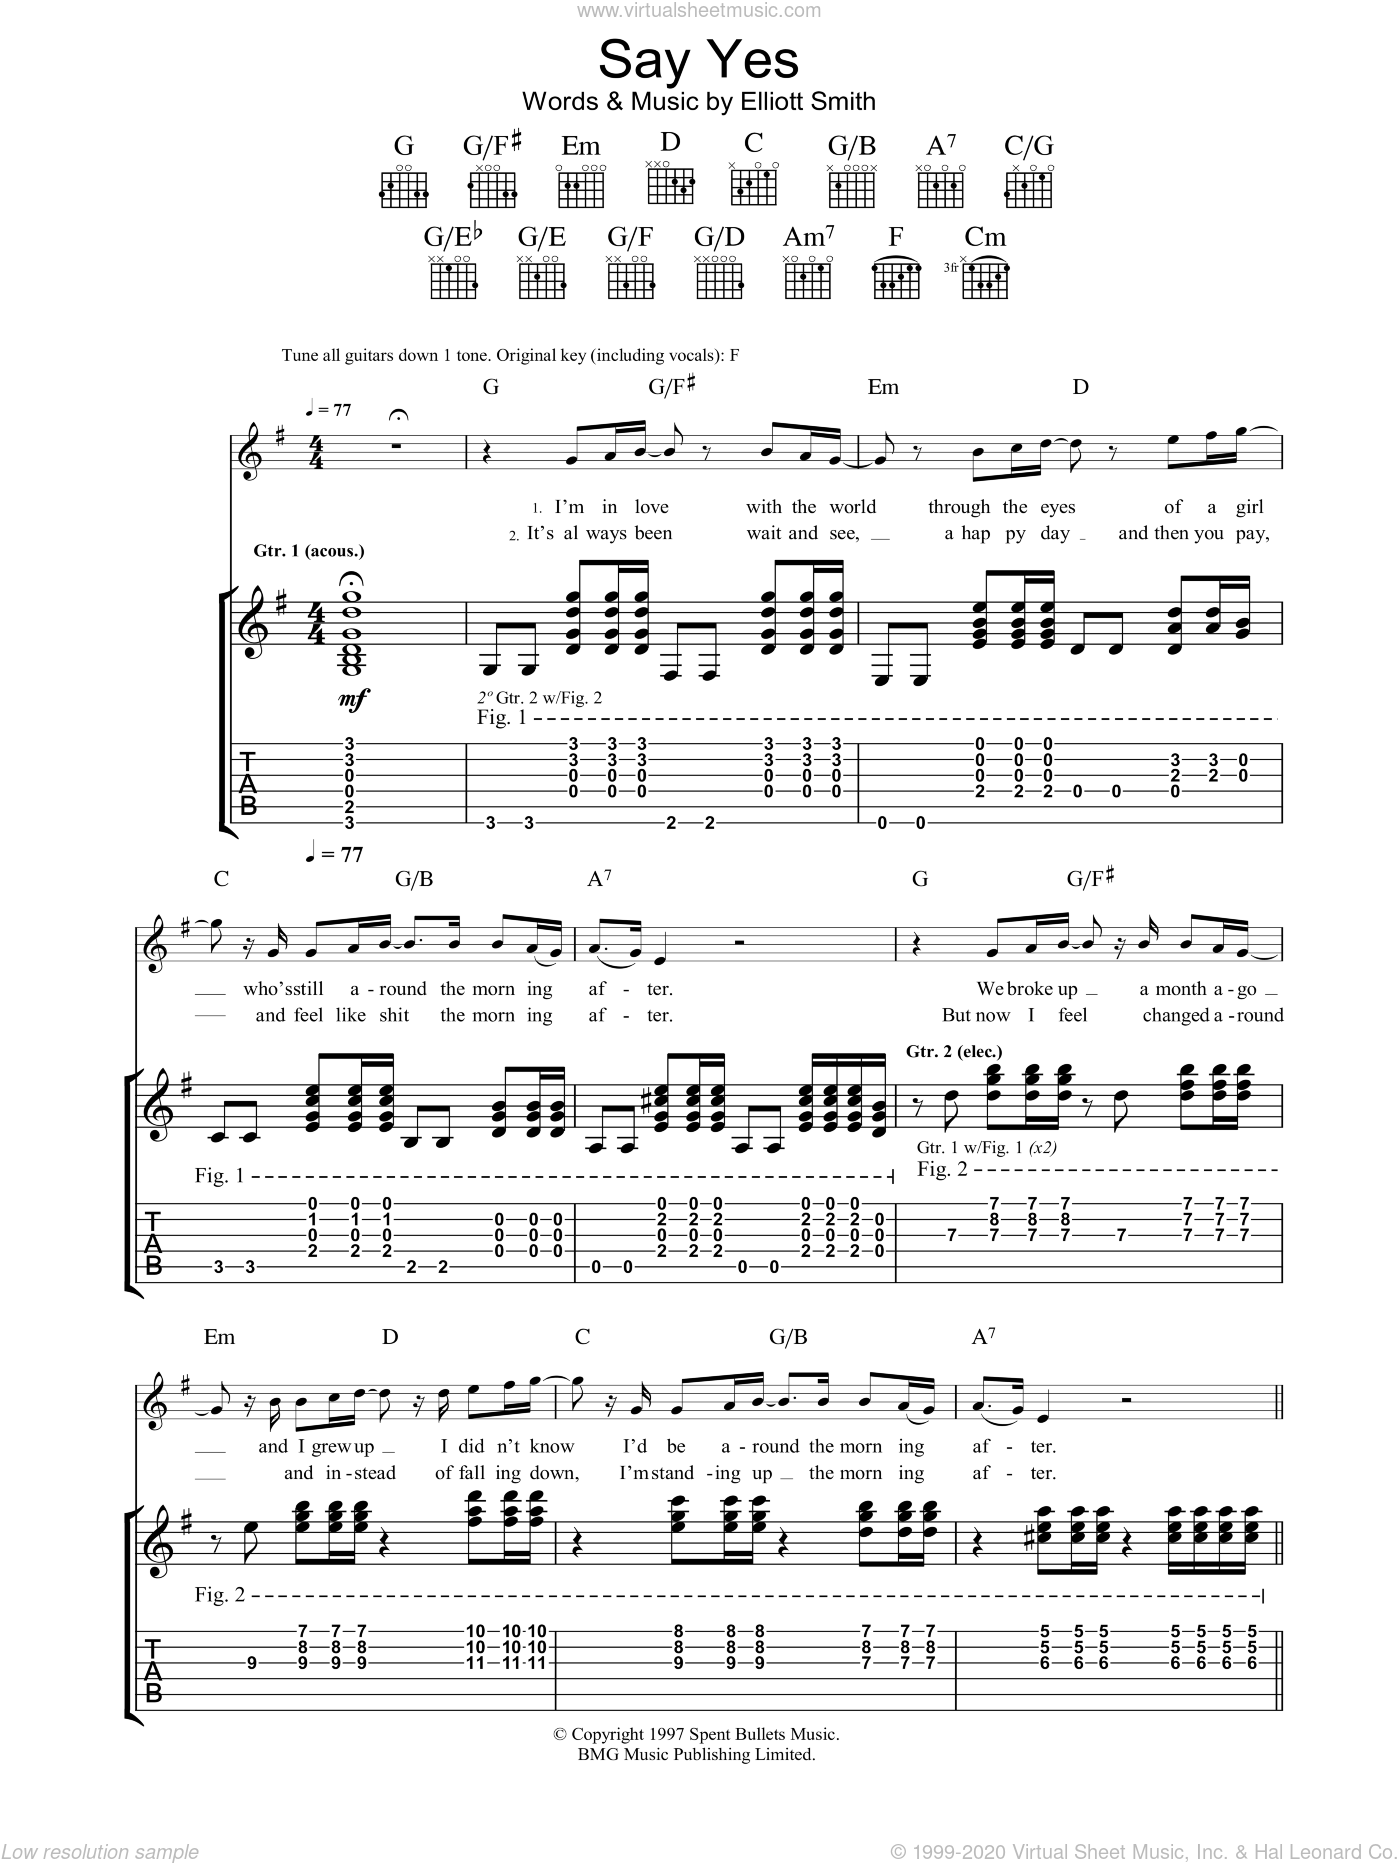 Say Yes sheet music for guitar (tablature) by Elliott Smith, intermediate skill level